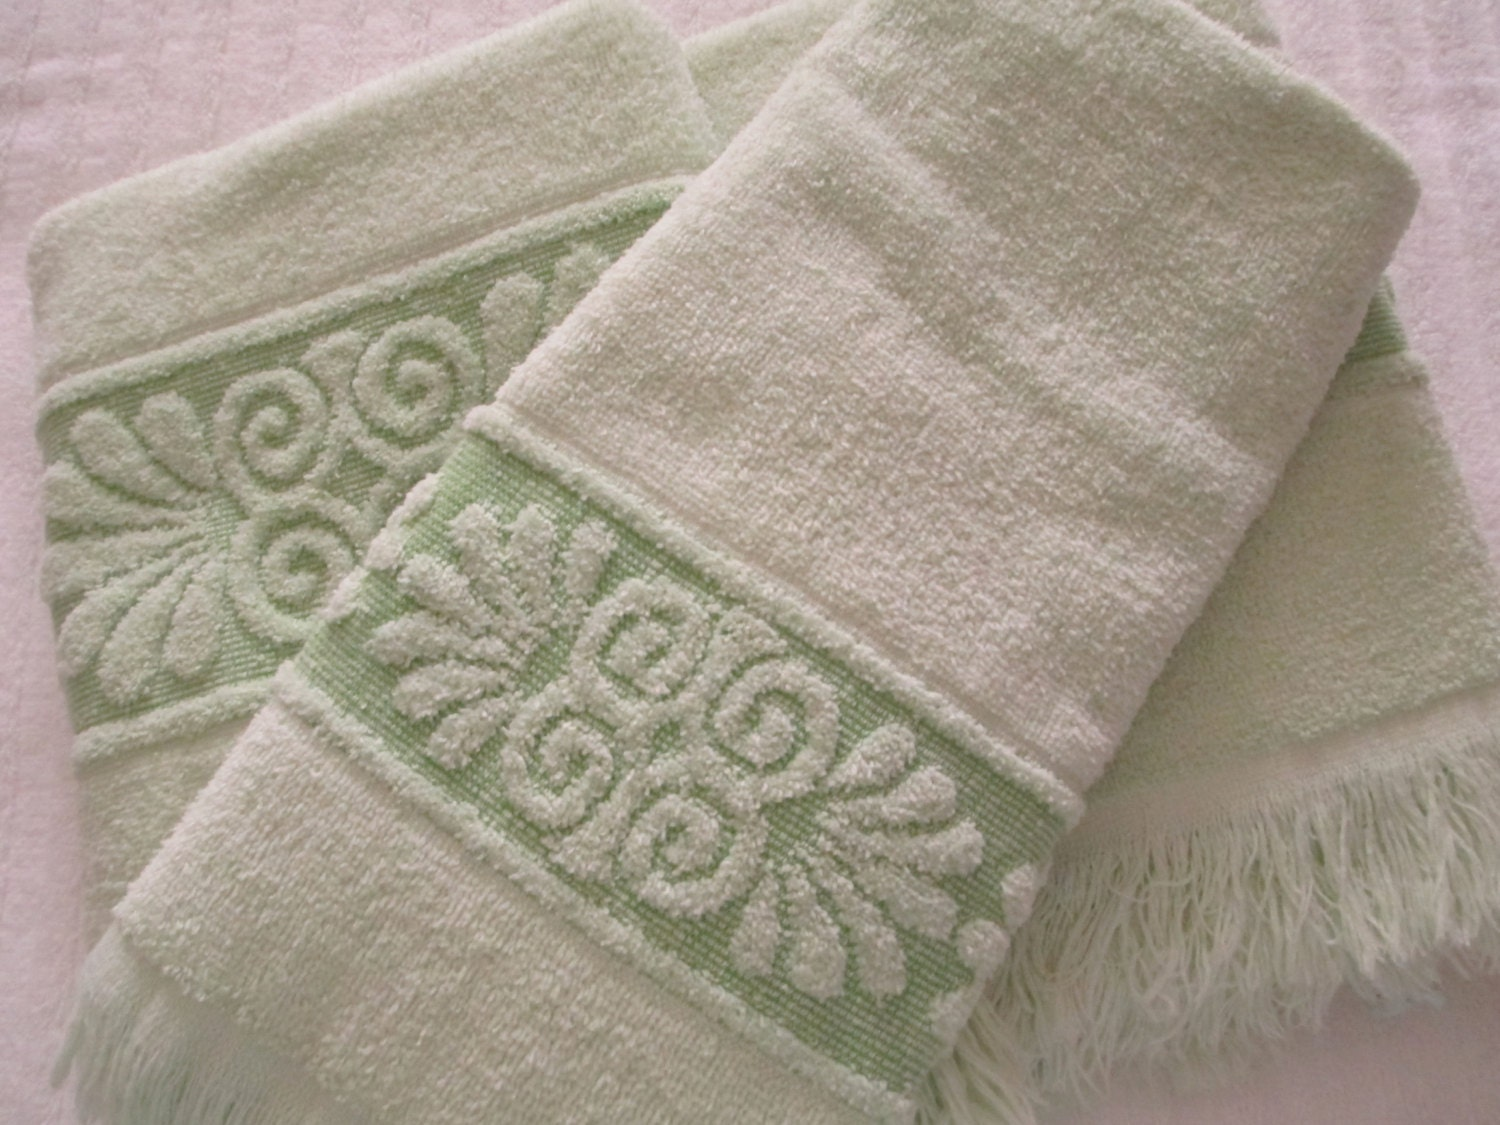 ragabjv.gq: lime green bath towels. From The Community. Amazon Try Prime All Goza Towels Cotton Hand Towels, 16 by 28 inch (4 Pack) (Light Green) by Goza Towels. $ $ 14 99 Prime. FREE Shipping on eligible orders. Only 10 left in stock - order soon. out of 5 stars Product Features.